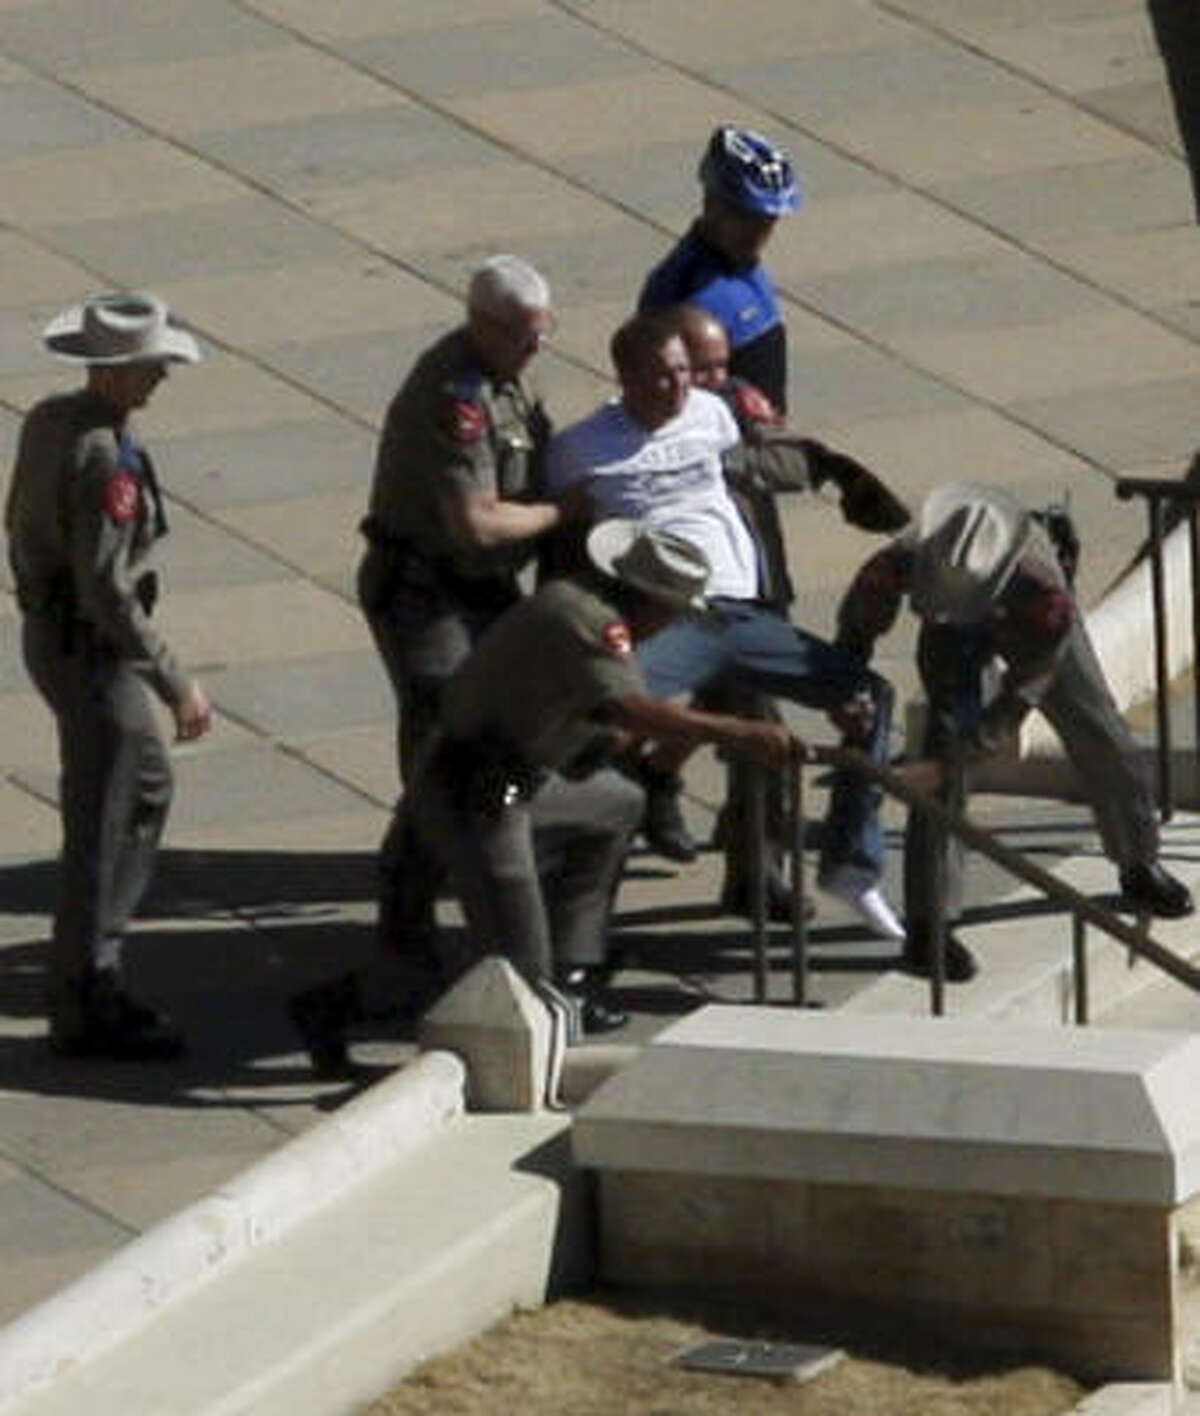 State troopers take a man into custody moments after reports of gunfire Thursday on the steps of the Texas Capitol. A DPS spokeswoman said nobody was wounded.